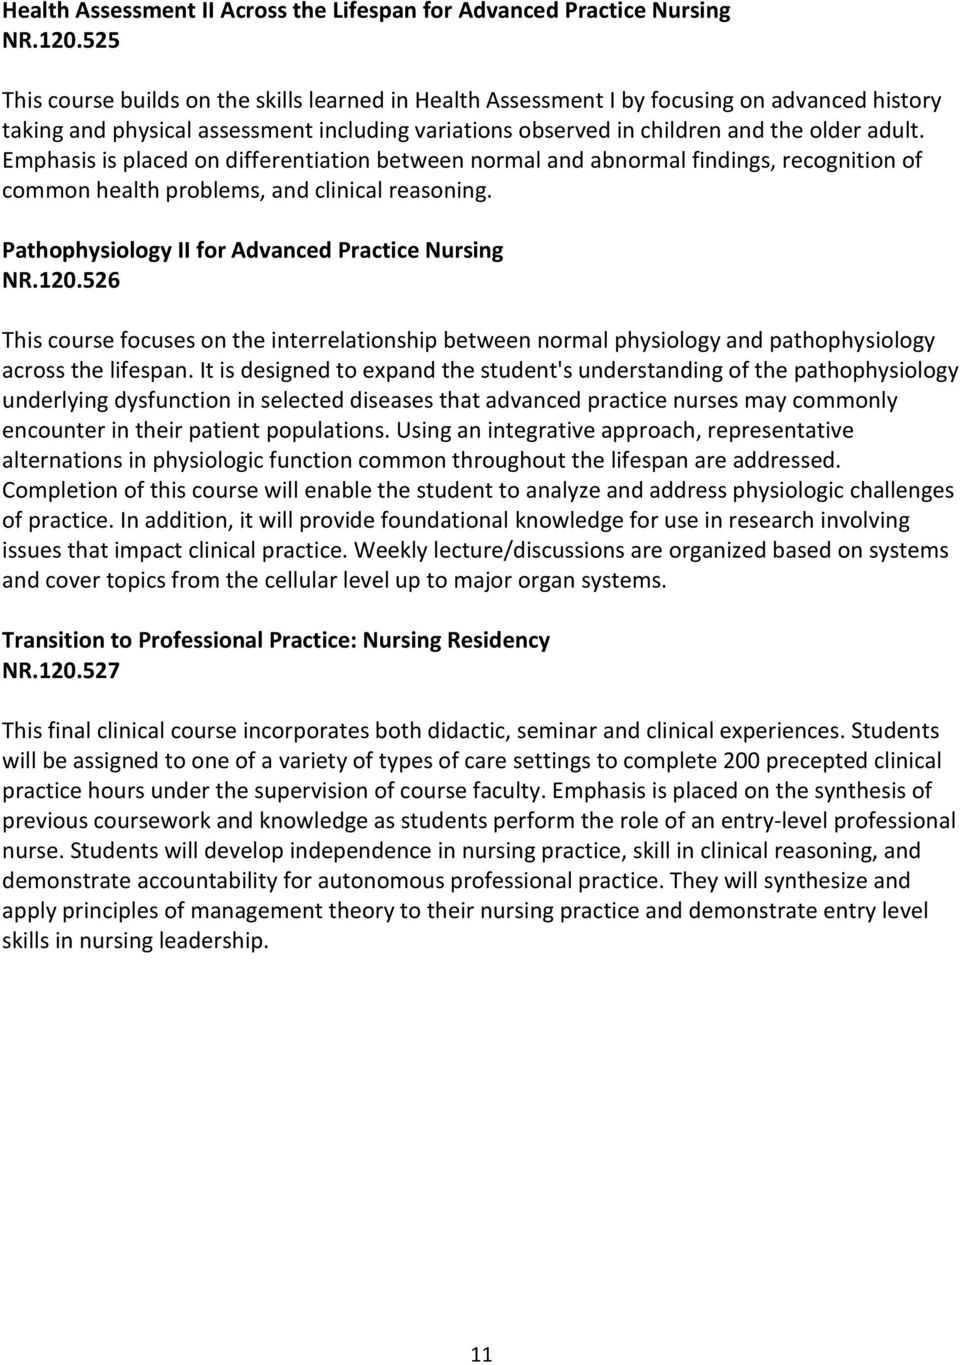 Emphasis is placed on differentiation between normal and abnormal findings, recognition of common health problems, and clinical reasoning. Pathophysiology II for Advanced Practice Nursing NR.120.